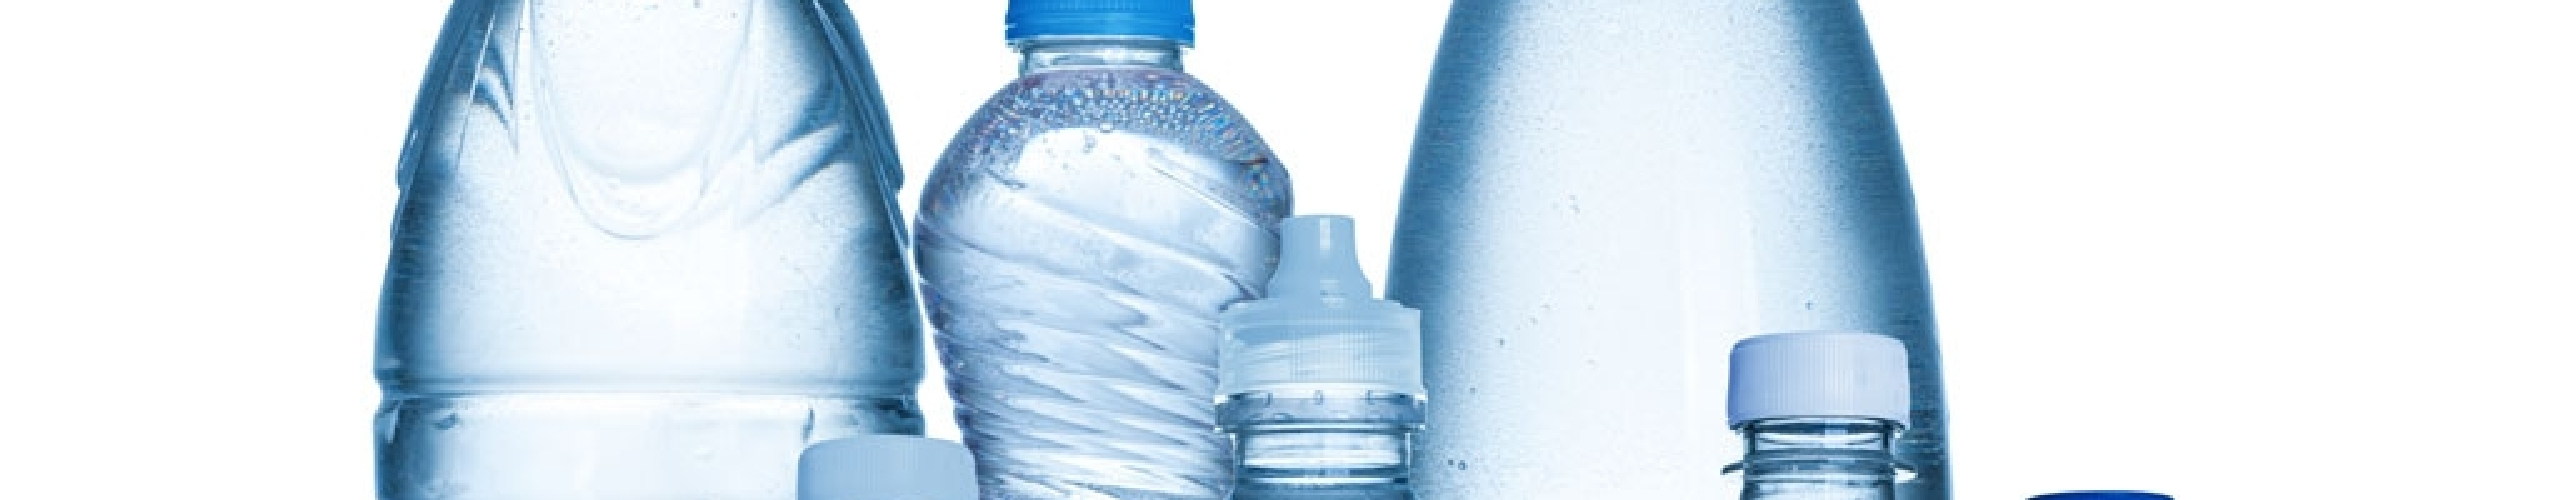 Recycling---plastic-bottles